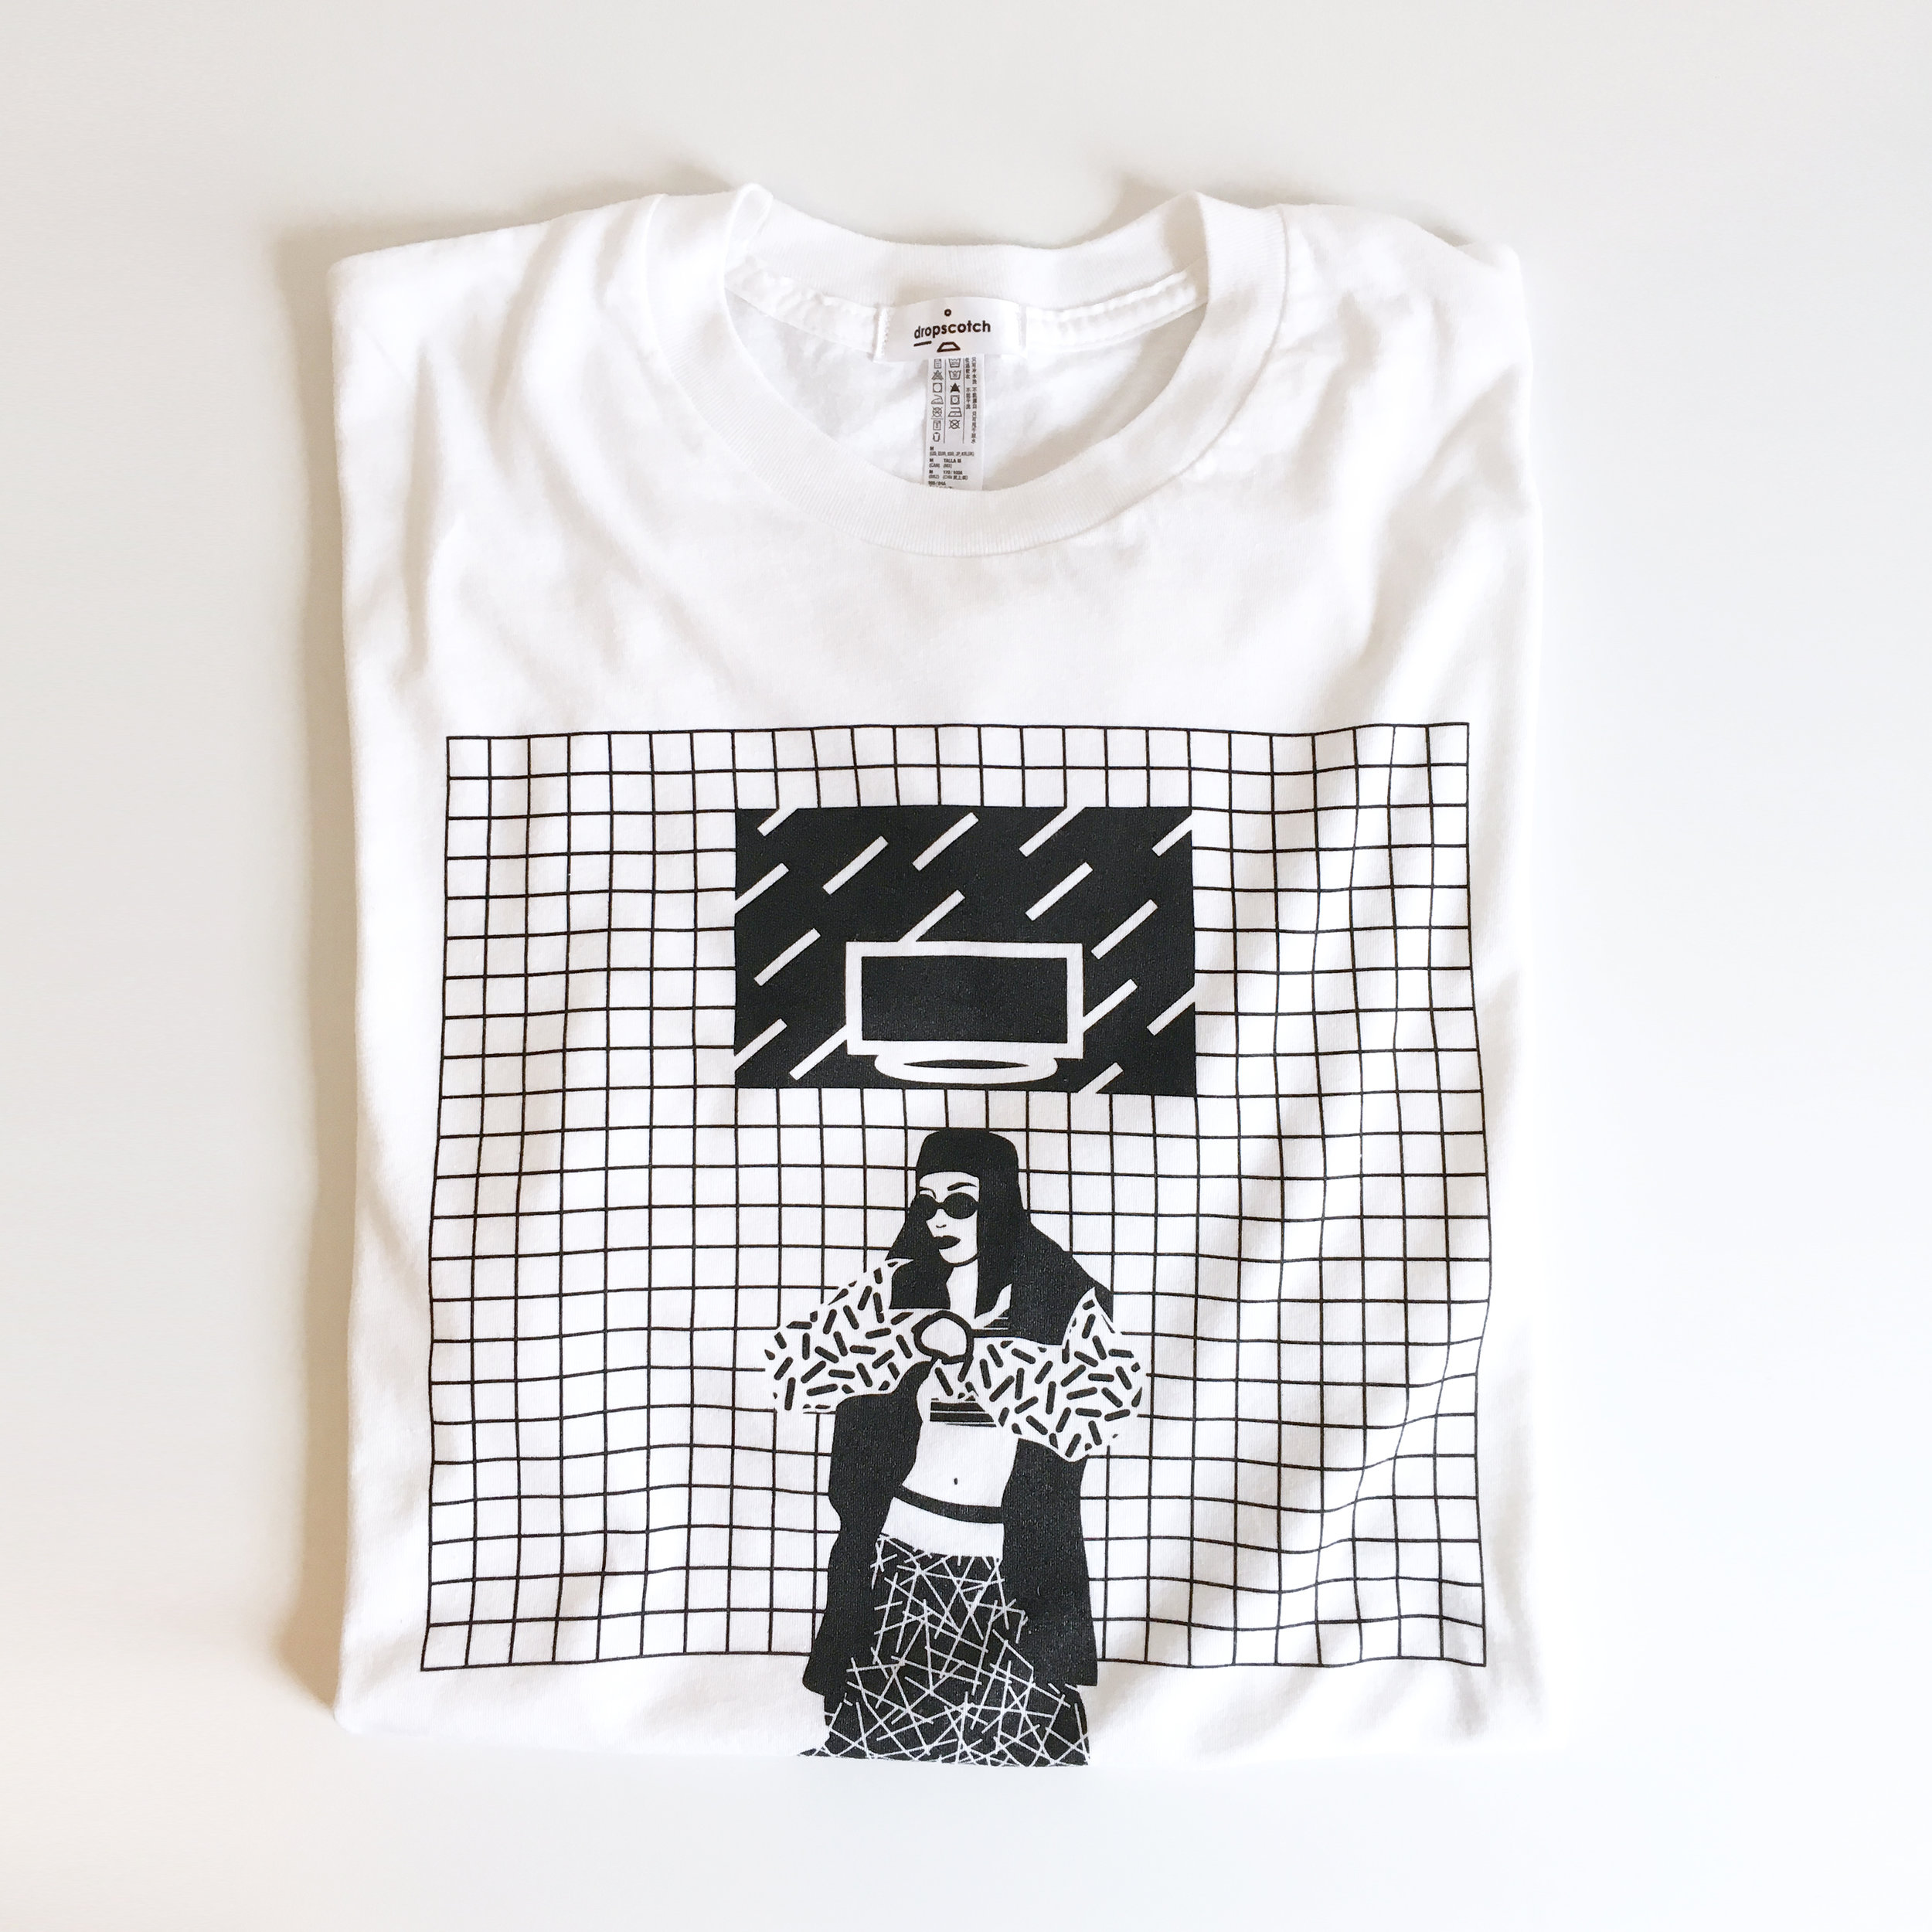 Aaliyah-white-tshirt-rnb-dropscotch-cool-illustration-folded.jpg